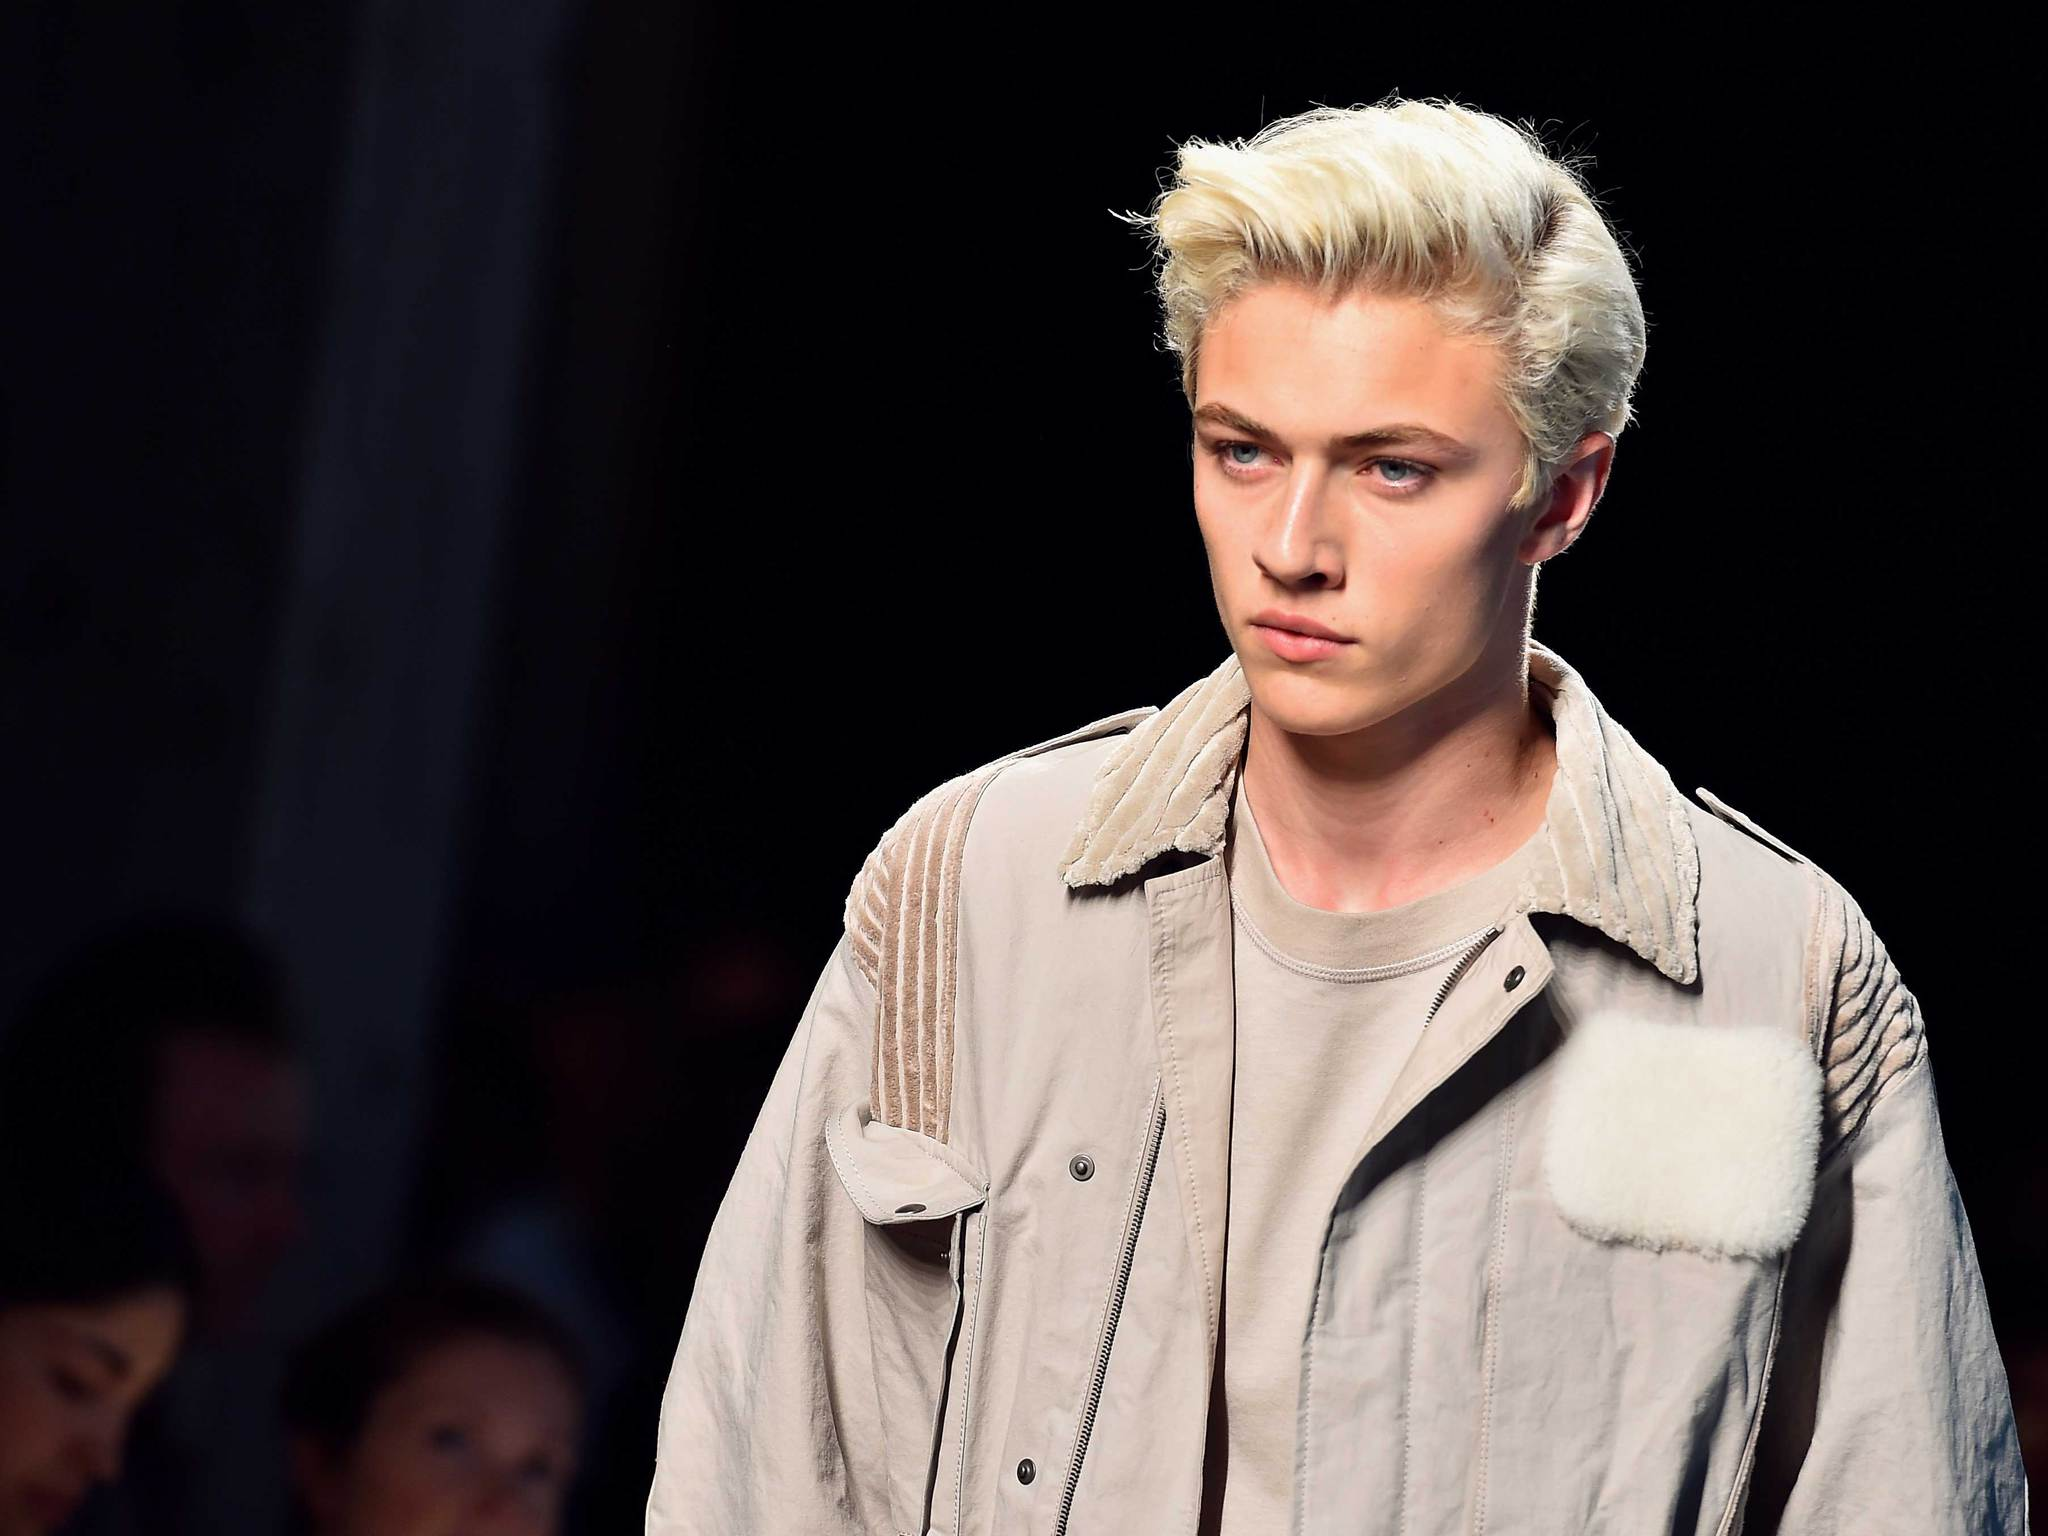 Lucky Blue Smith Meet the insta famous model dominating the 2048x1536